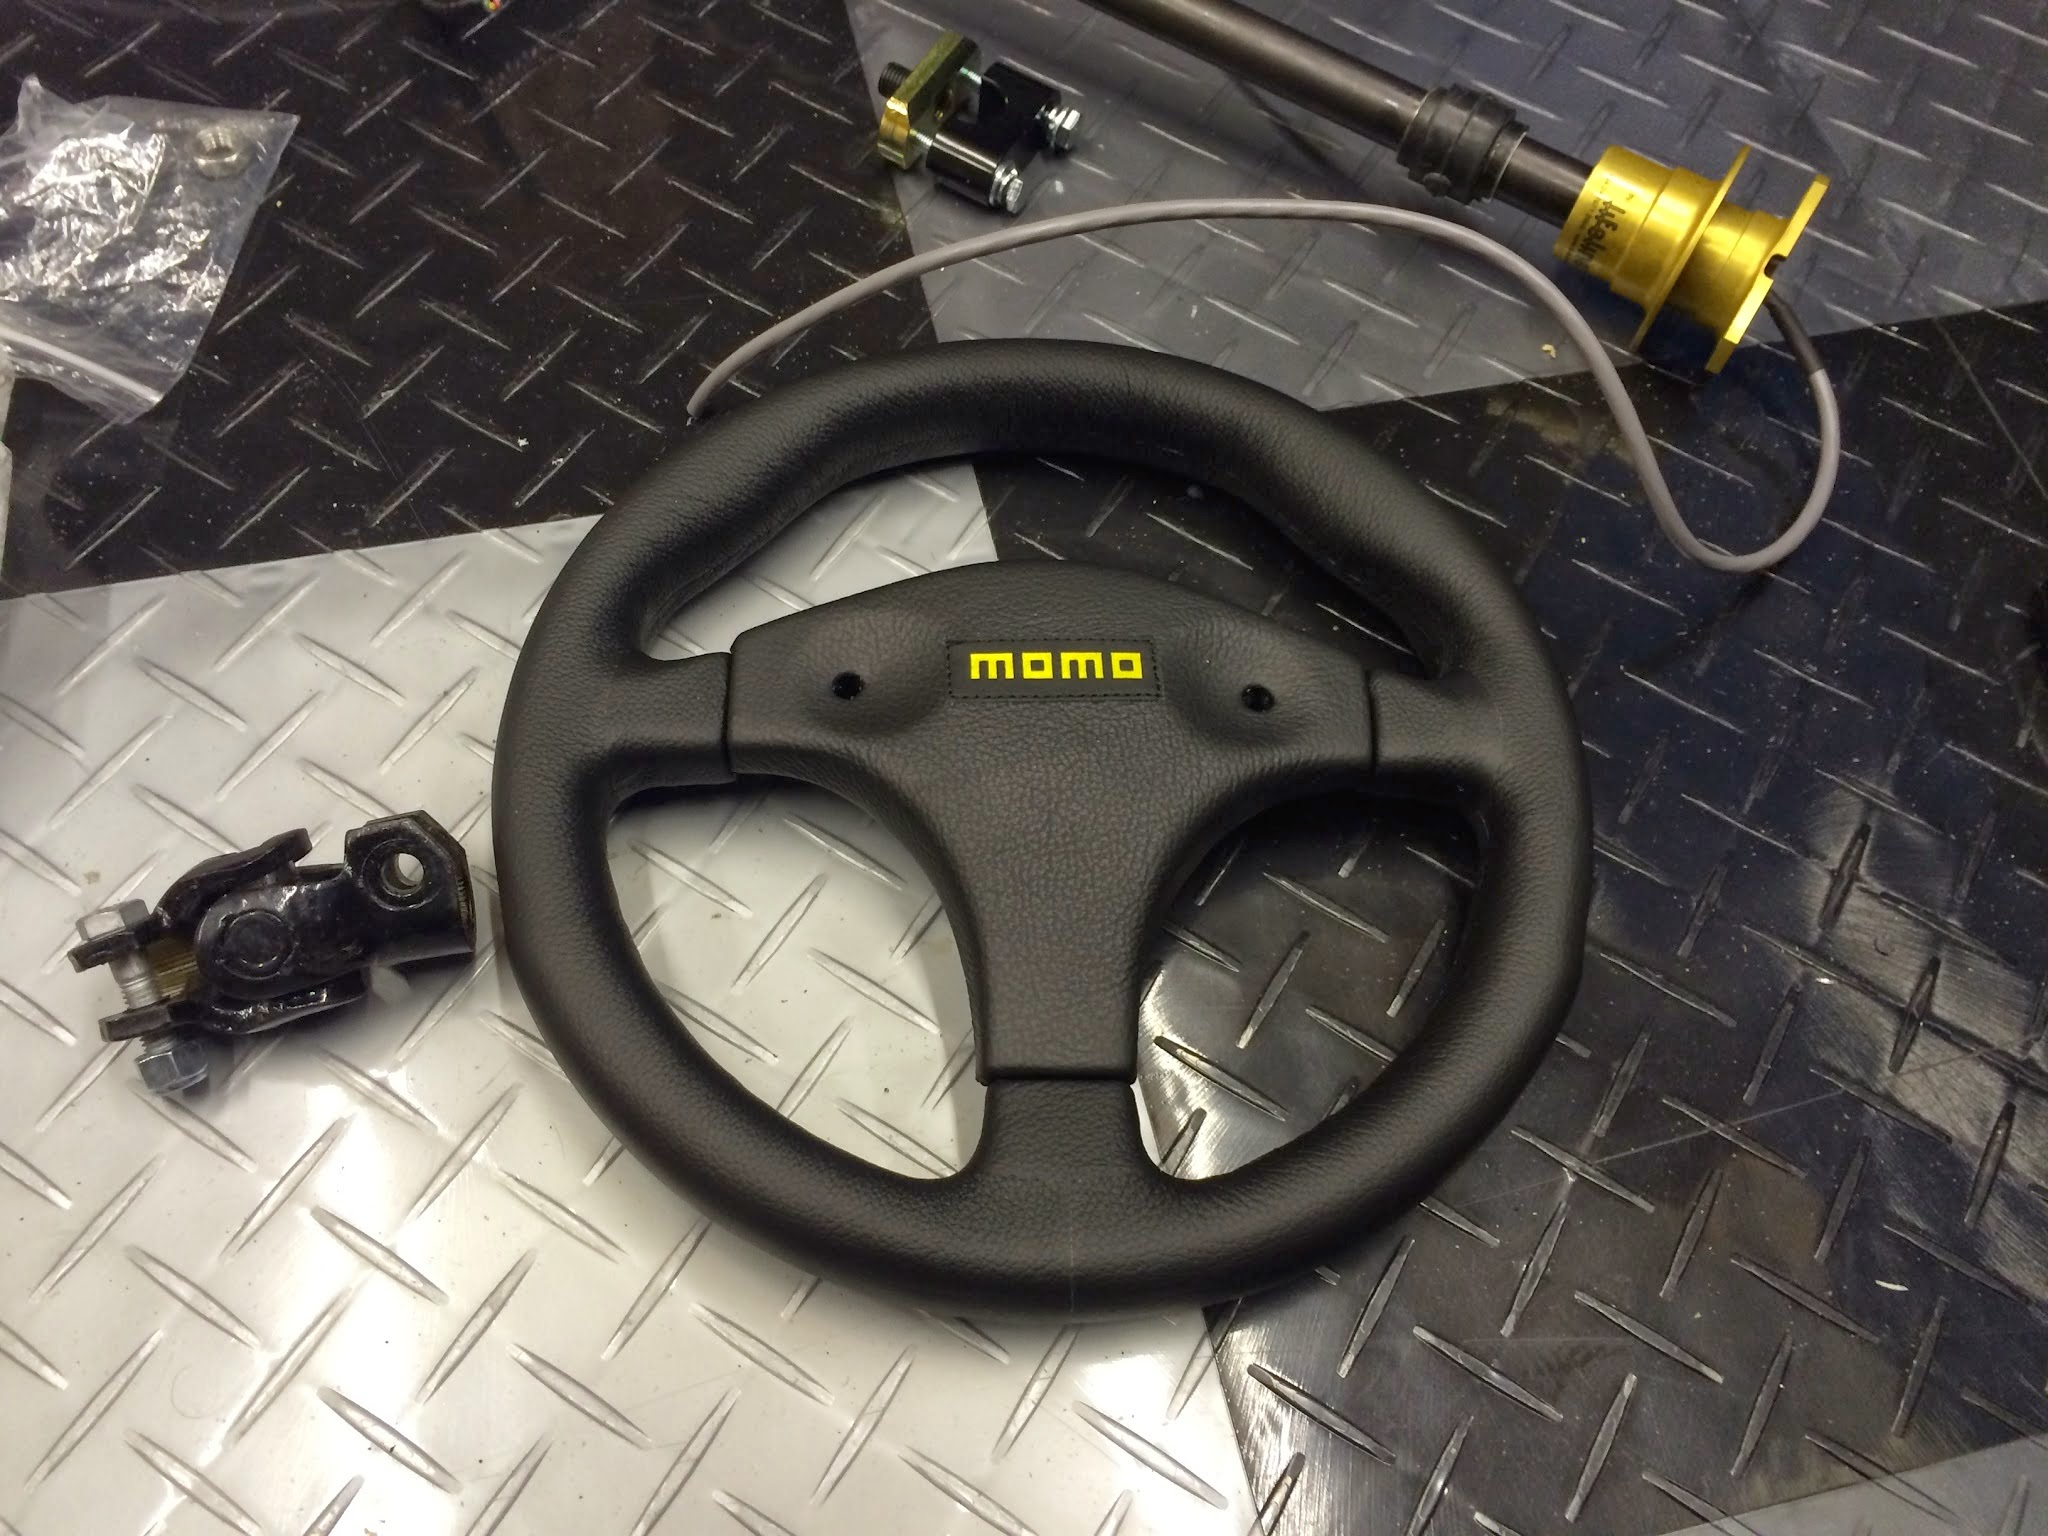 Steering wheel, UJ, upper column with quick release boss and clamp plate.